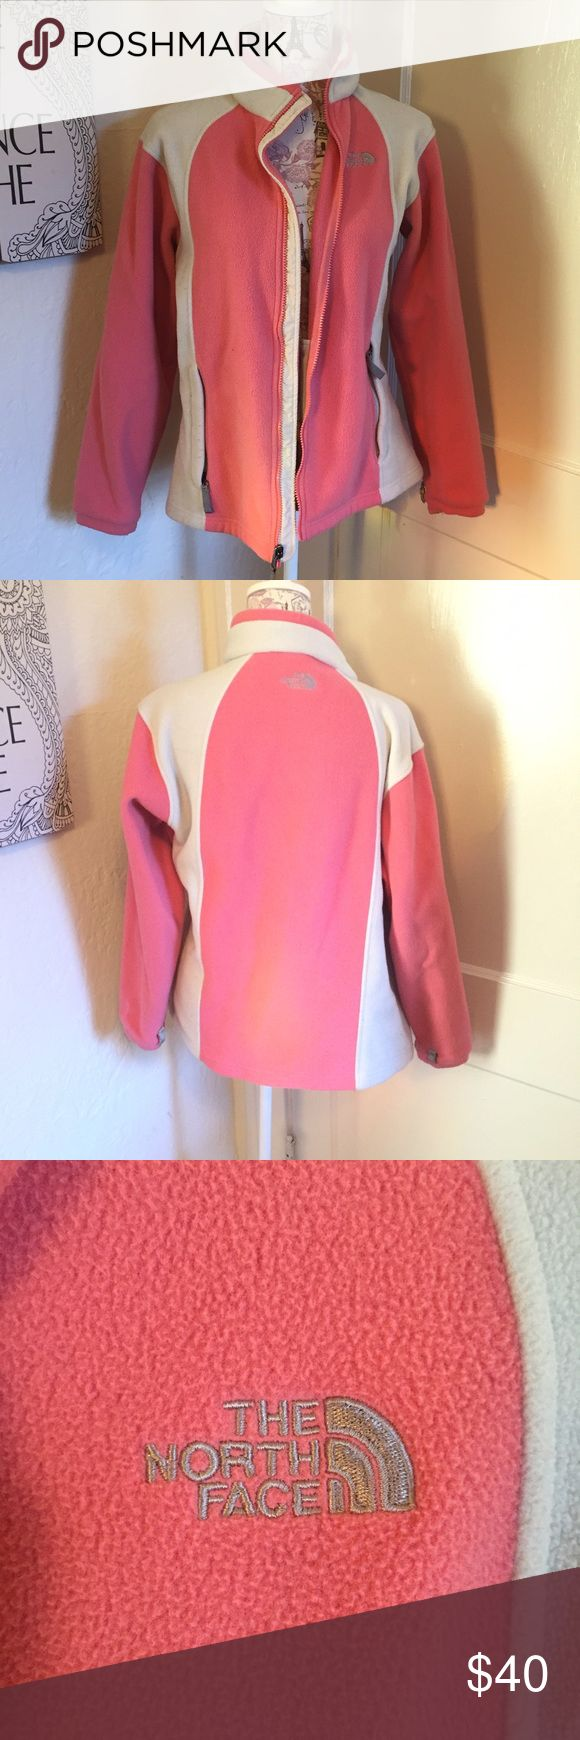 Peach and cream north face fleece jacket 🎀 Fleece 🎀 Peach and cream   🎀 Size girls xl, women by me about the equivalent of a women's small 🎀  Gently used  🎀Please ask for additional pictures, measurements, or ask questions before purchase 🎀No trades or other apps. 🎀Ships next business day, unless otherwise noted in my closet 🎀Reasonable offers accepted  🎀Five star rating 🎀Bundle for discount North Face Jackets & Coats